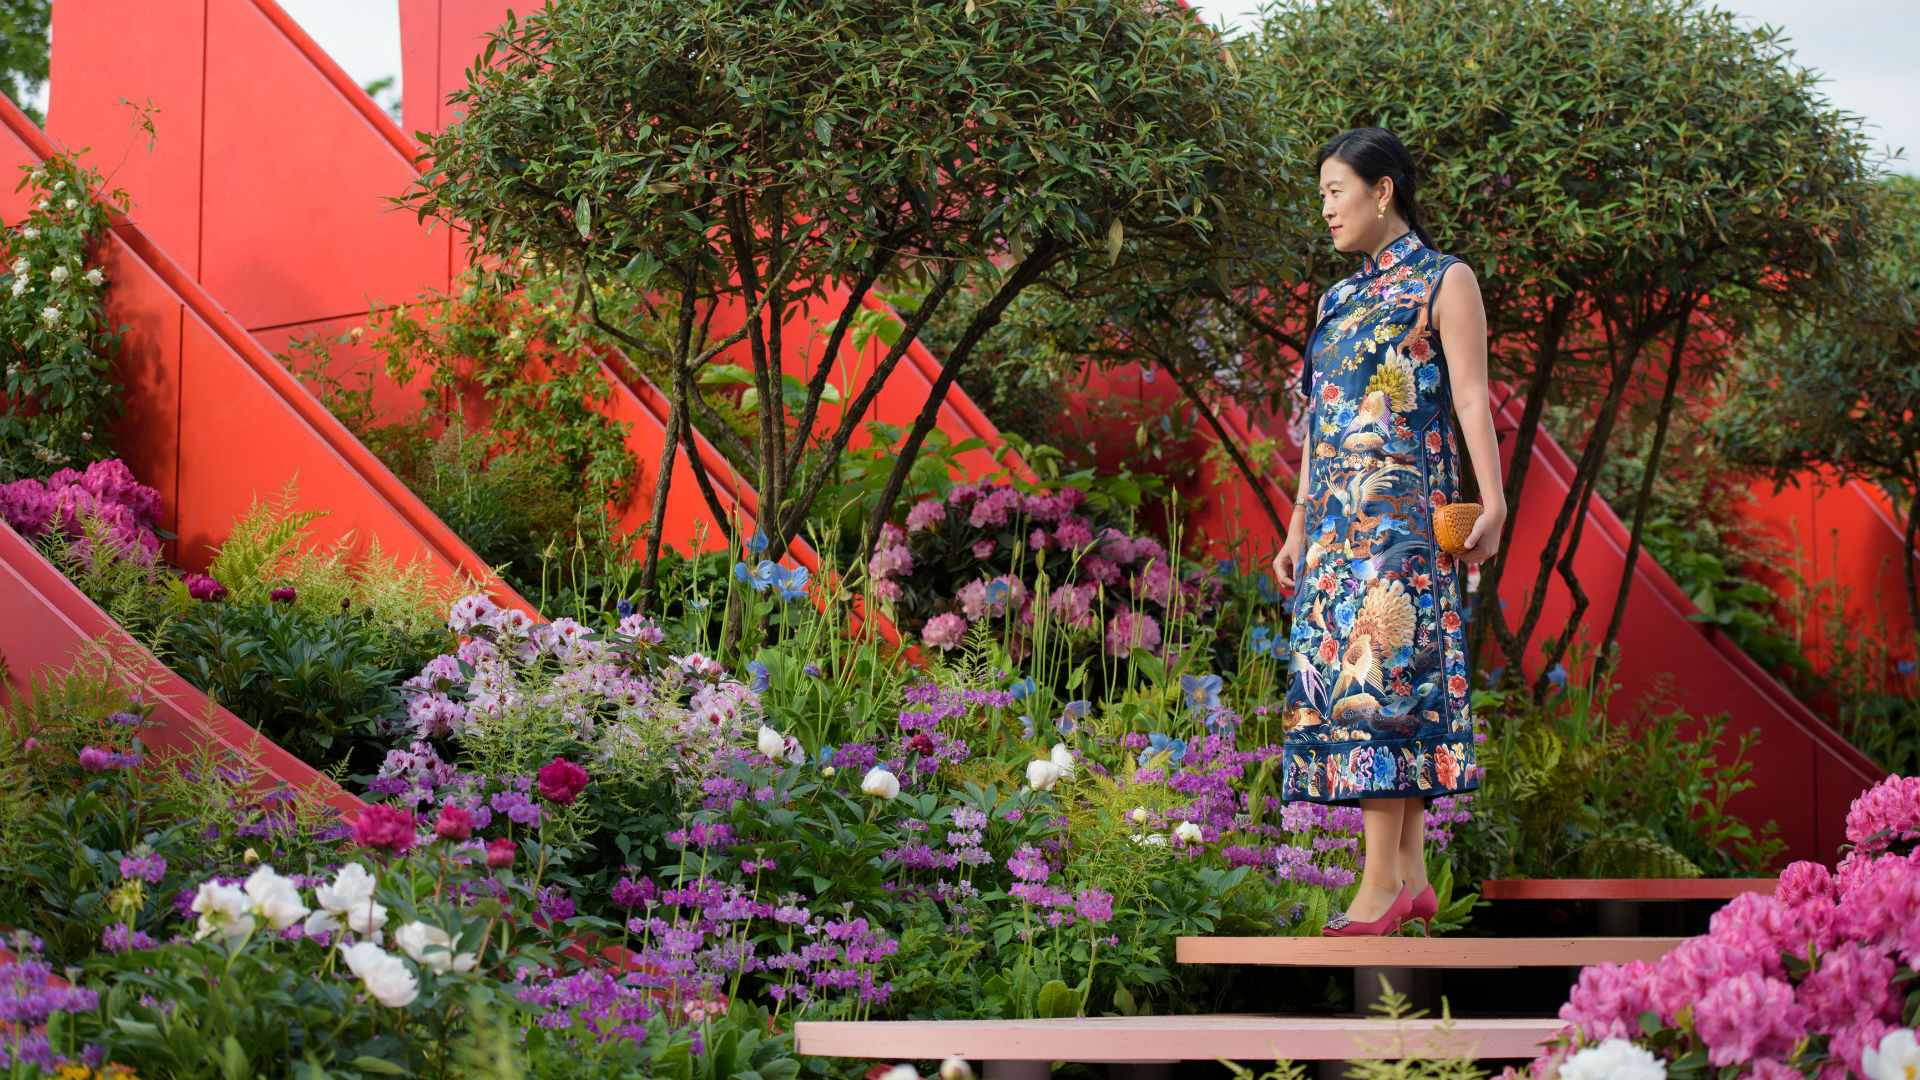 Rhs chelsea flower show 2019 special event visitlondon the silk road garden at rhs chelsea flower show 2017 copyright rhsgeorgi mabee image courtesy of rhs mightylinksfo